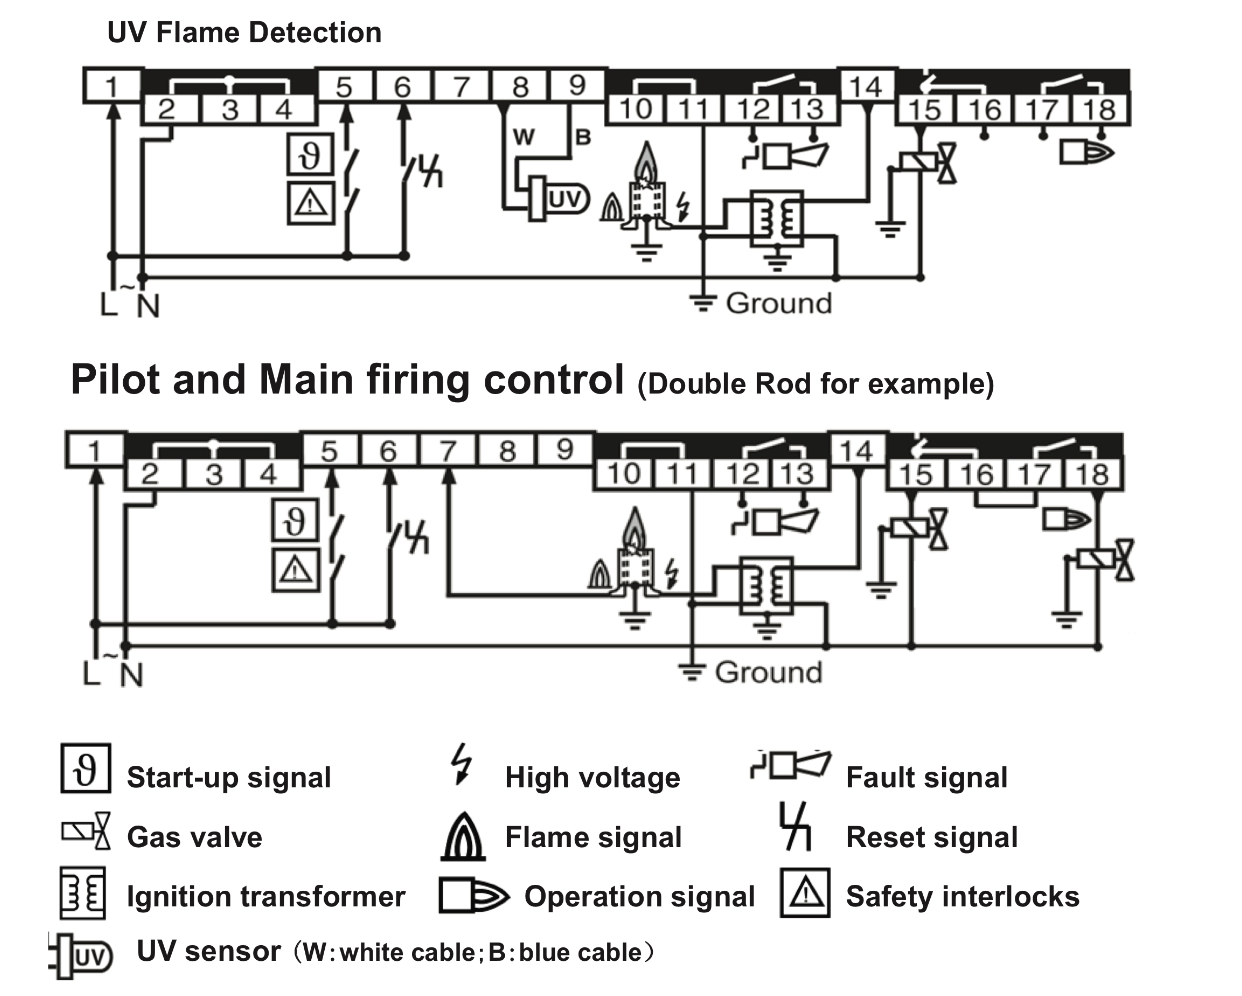 Modutrol Motor Wiring Diagram from www.add-furnace.com